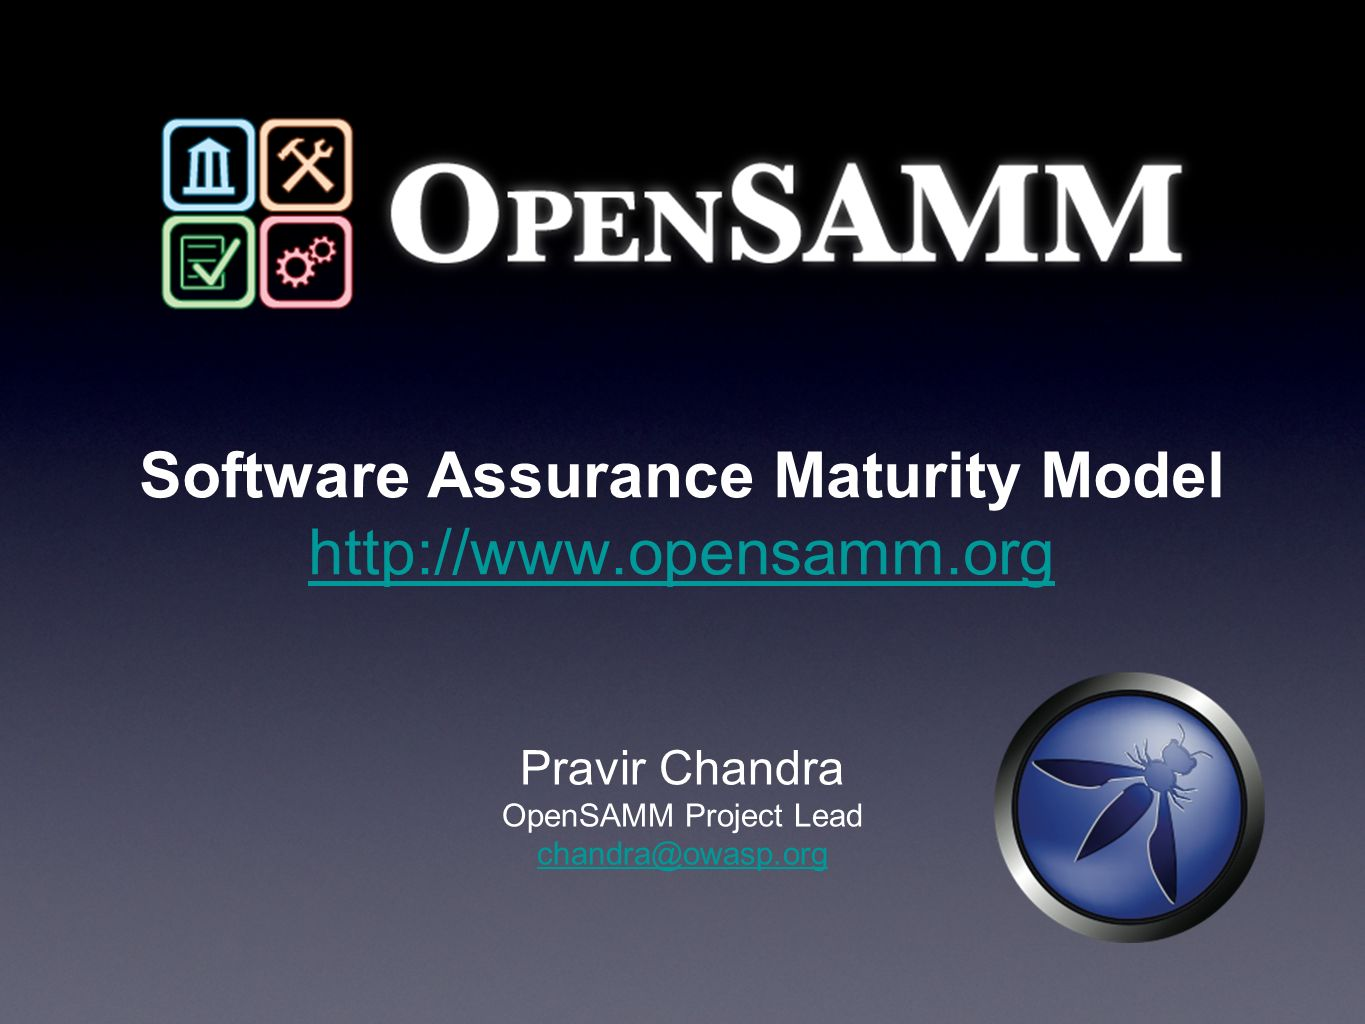 Software Assurance Maturity Model http://www.opensamm.org